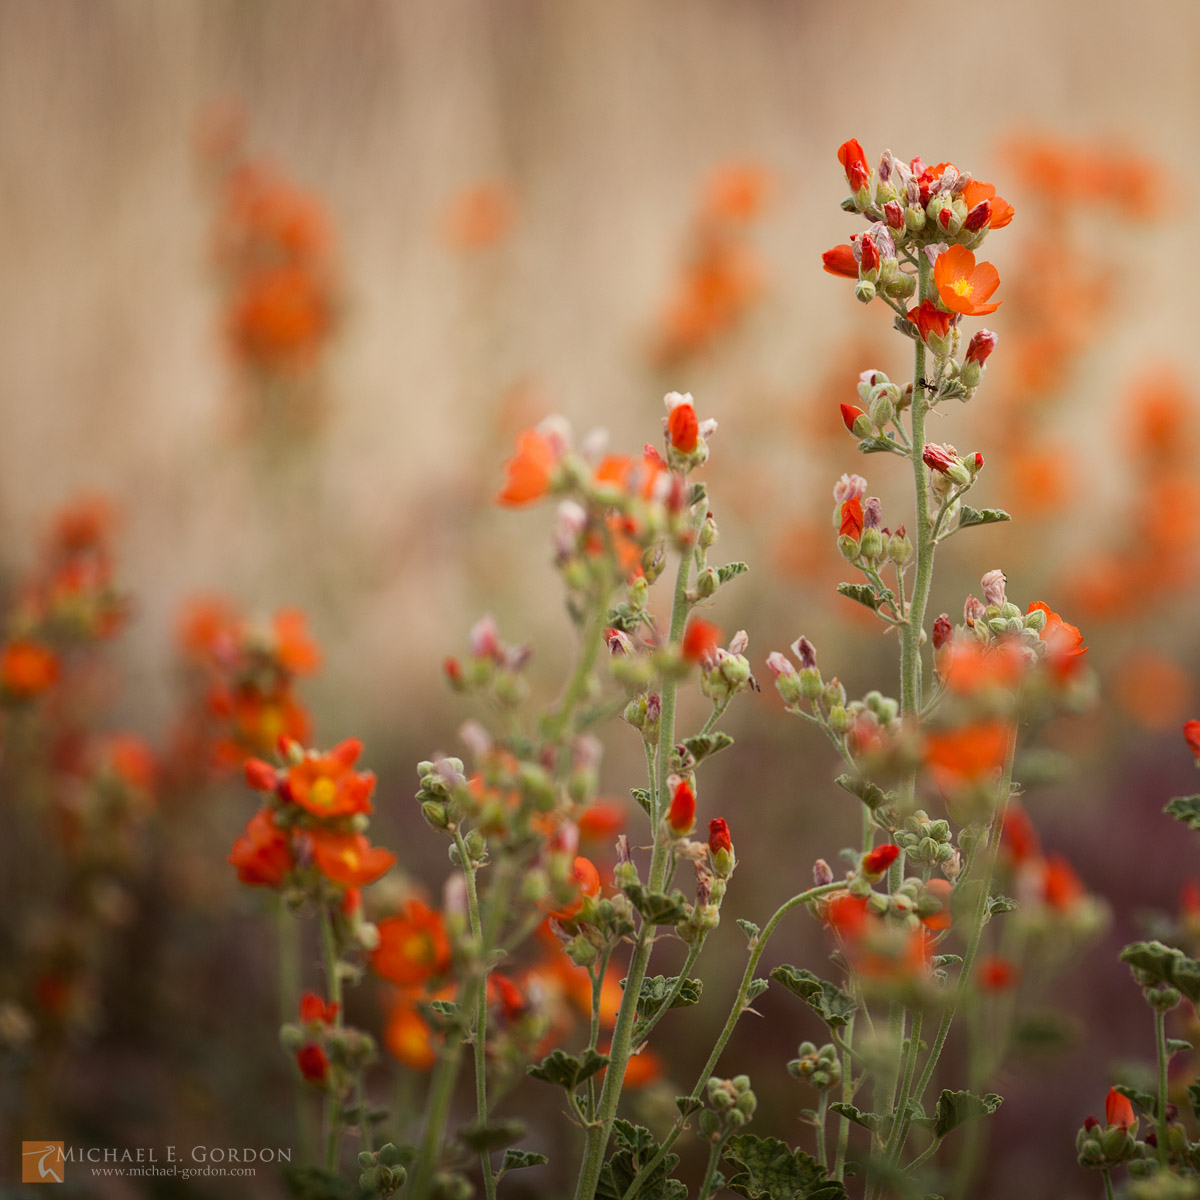 photo,picture,Desert Globemallow,Apricot Globemallow,Sphaeralcea ambigua,wildflowers,bloom,buds,orange,green,Mojave National Preserve,Mojave Desert,California., photo